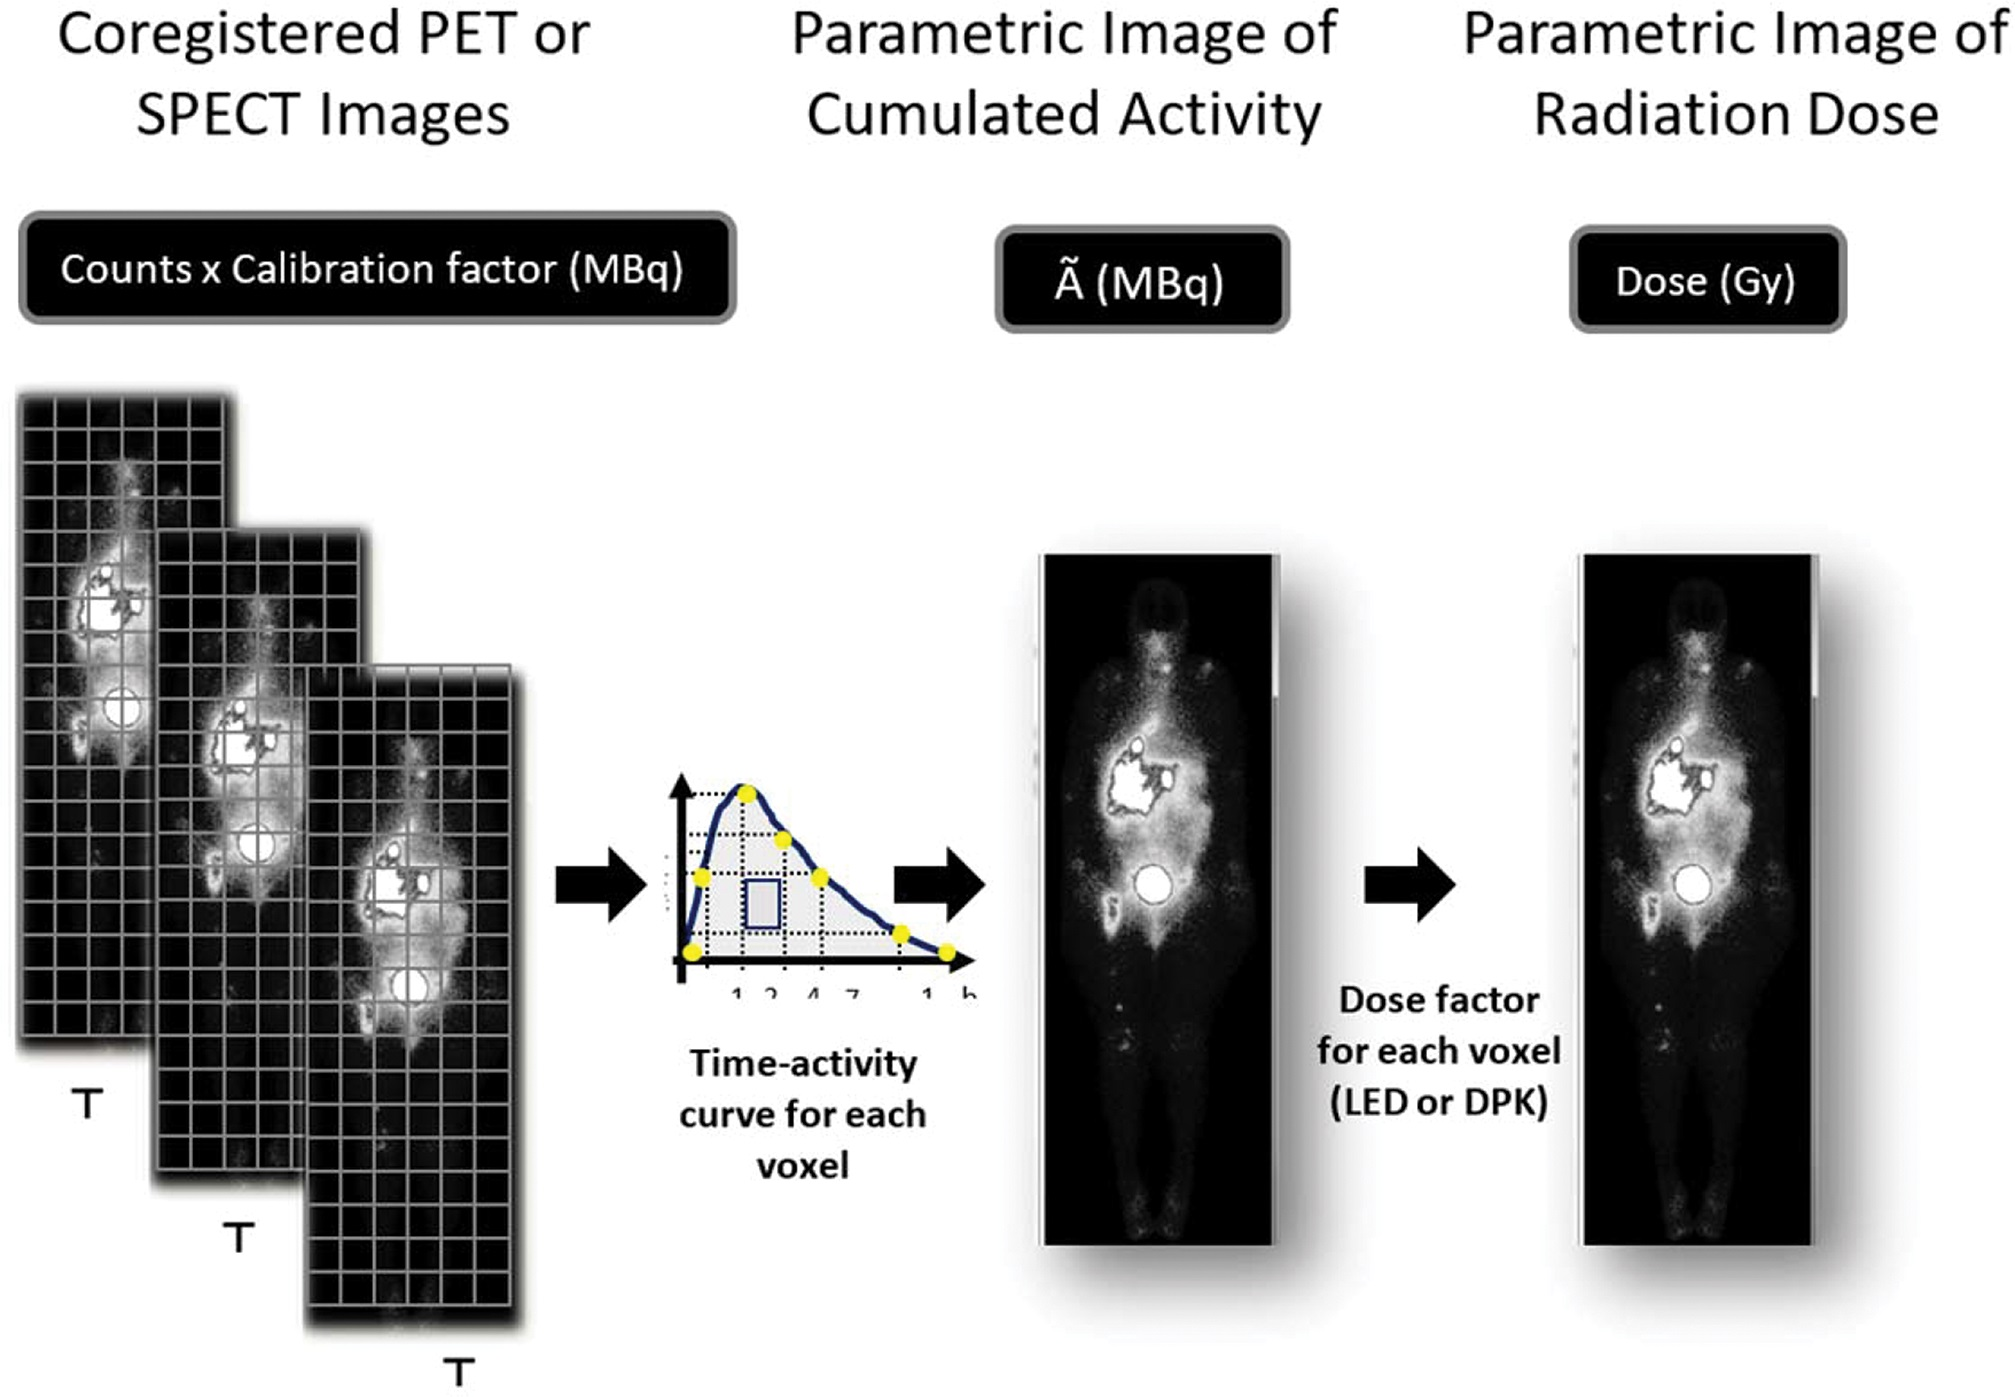 Sequential PET or SPECT images are coregistered so that a voxel of the same xyz coordinate always corresponds to the same structure. The calibration factor allows the transformation of counts in radioactivity (MBq). A parametric image of accumulated activity à (MBq.h) is obtained from the integral of activity through time in each voxel. The energy deposited in each voxel is calculated based on the local energy deposition (LED) or dose point kernel (DPK) and results in the radiation absorbed dose parametric image (Gy).